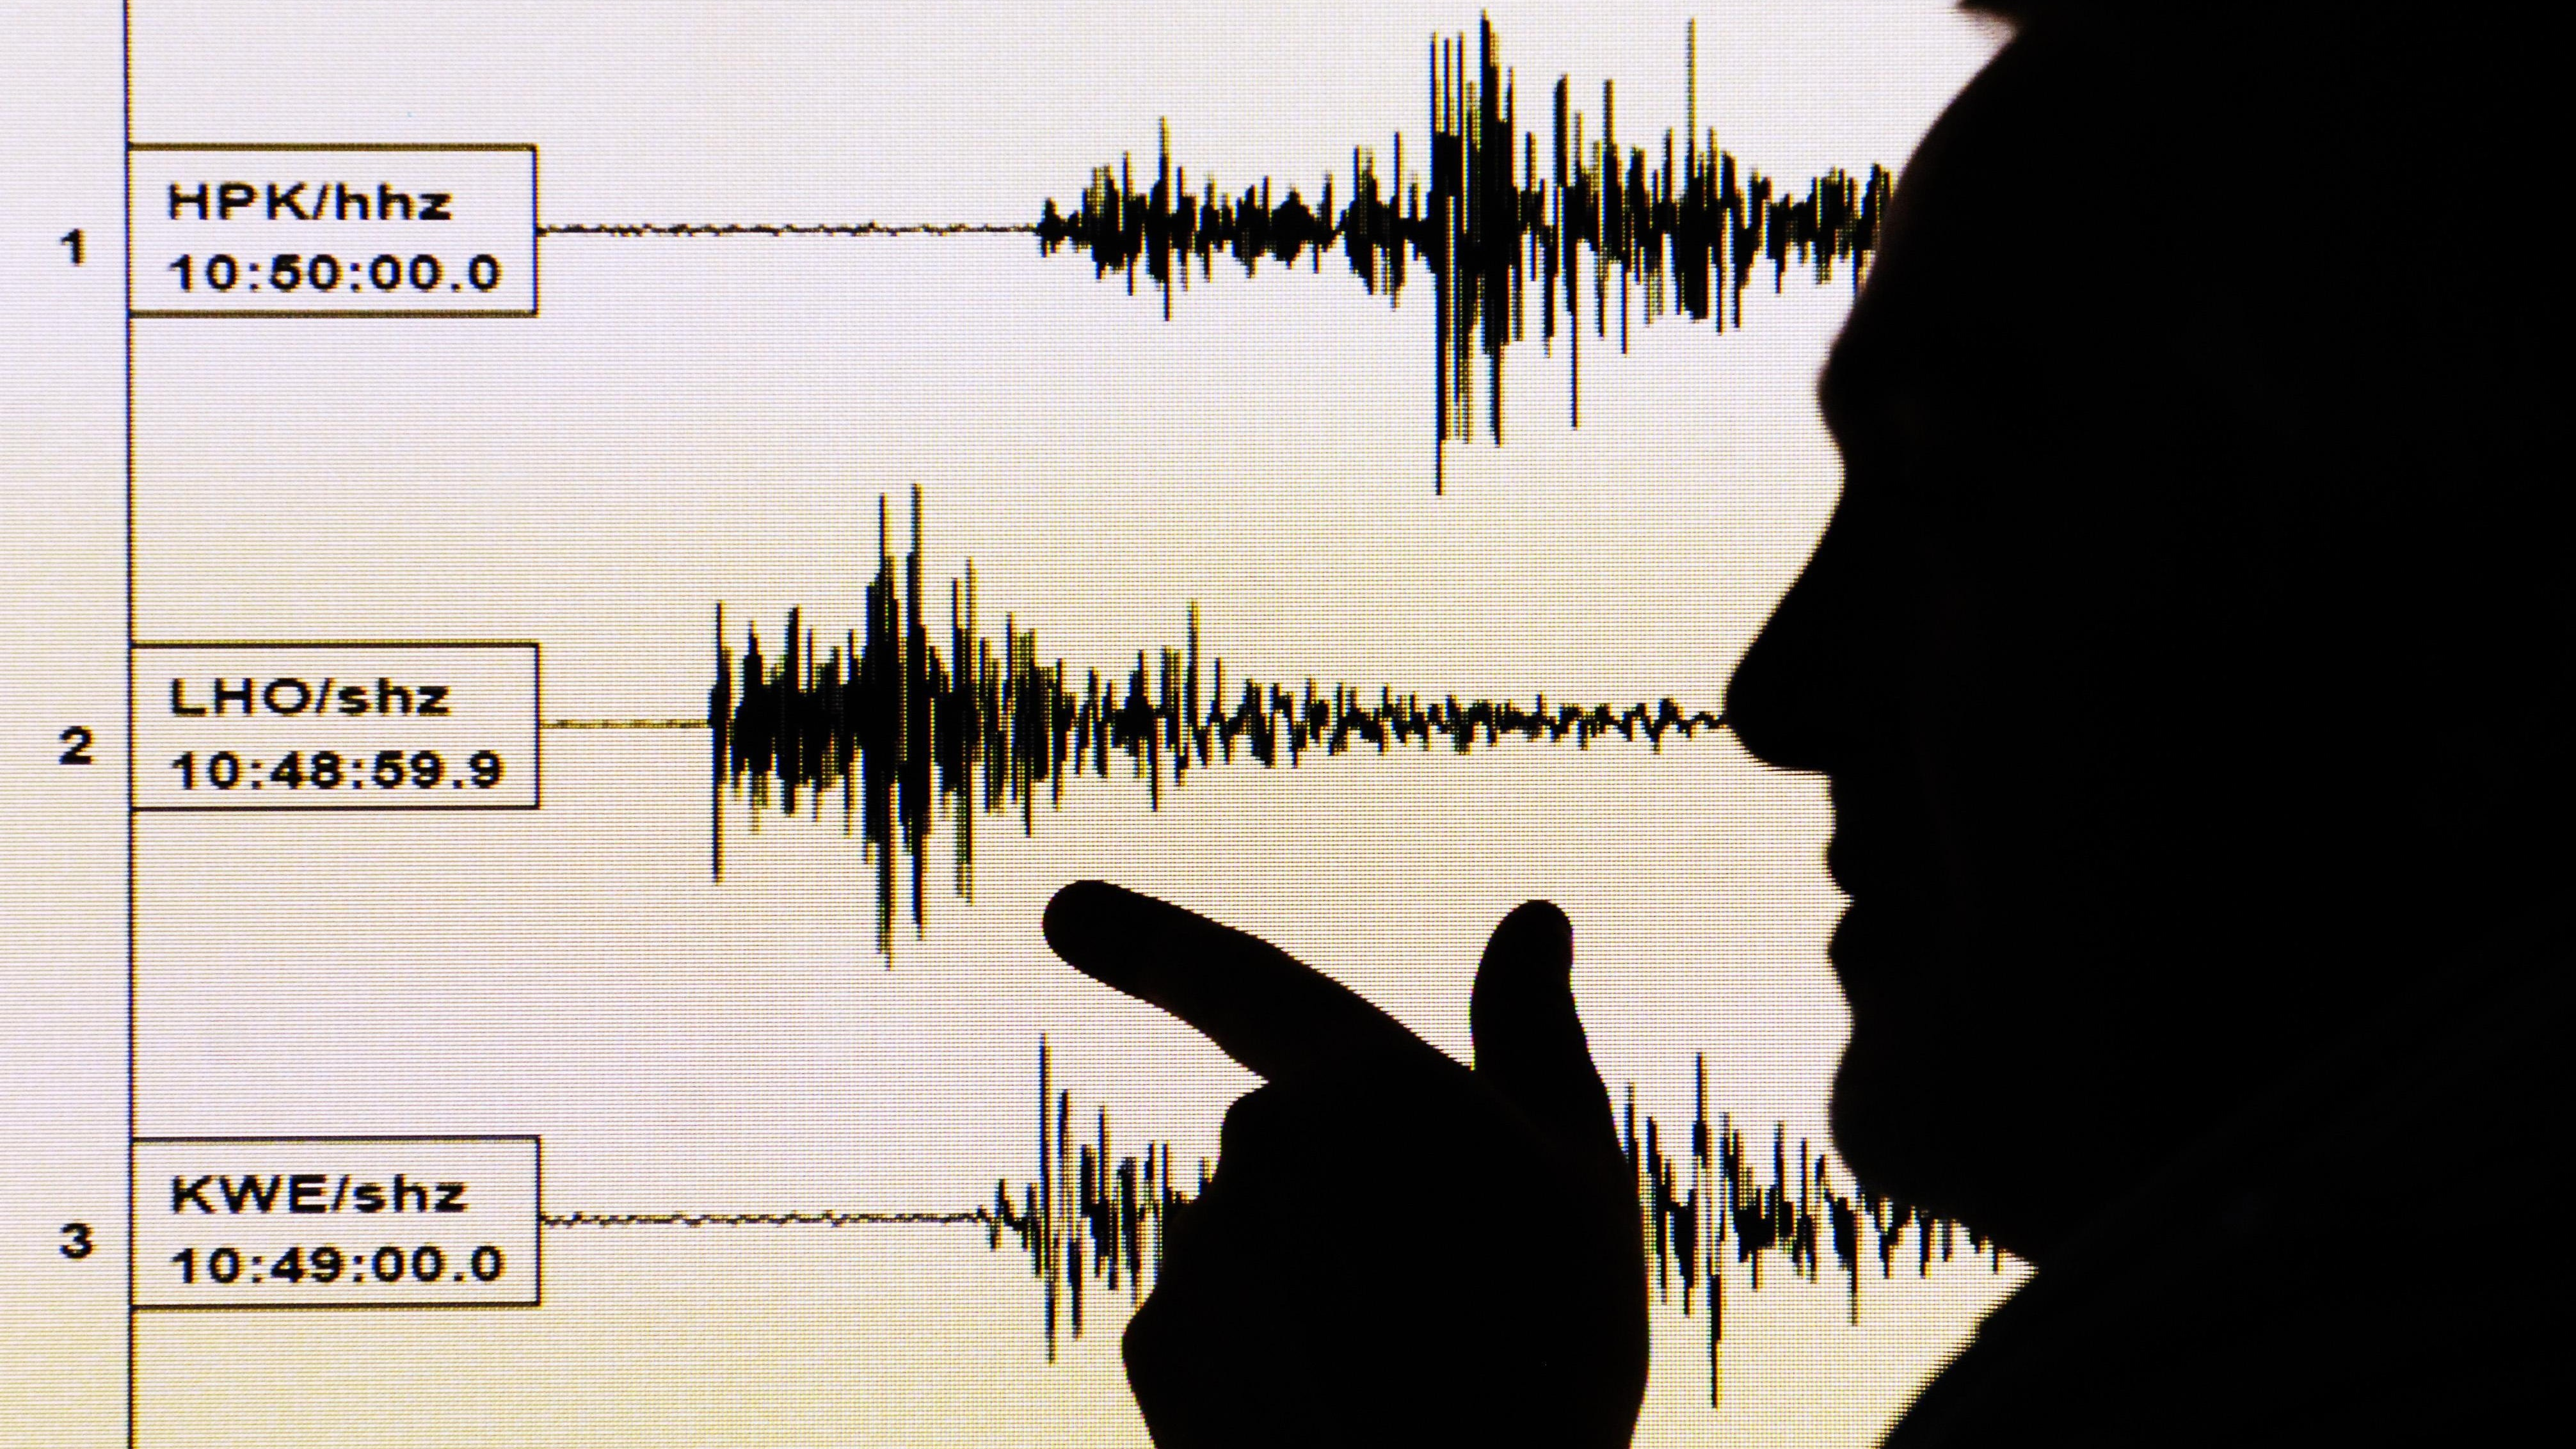 Natural disaster  causes tremors across north of England